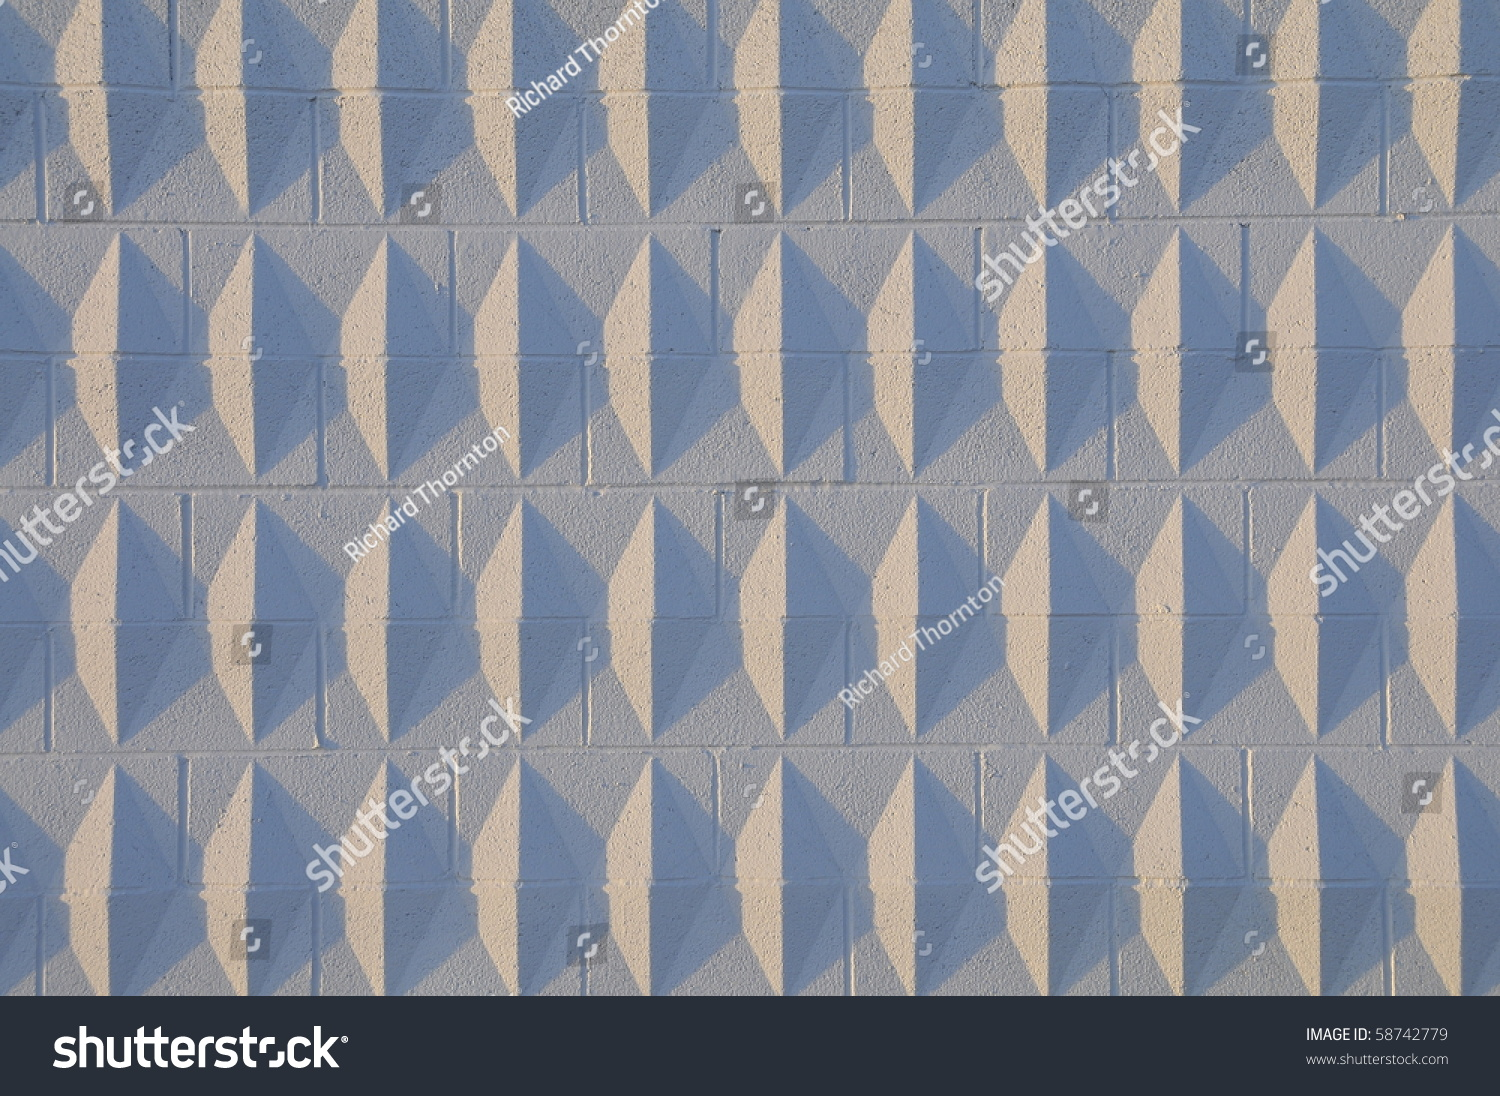 background texture or abstract decorative concrete block wall low contrast version - Decorative Concrete Block